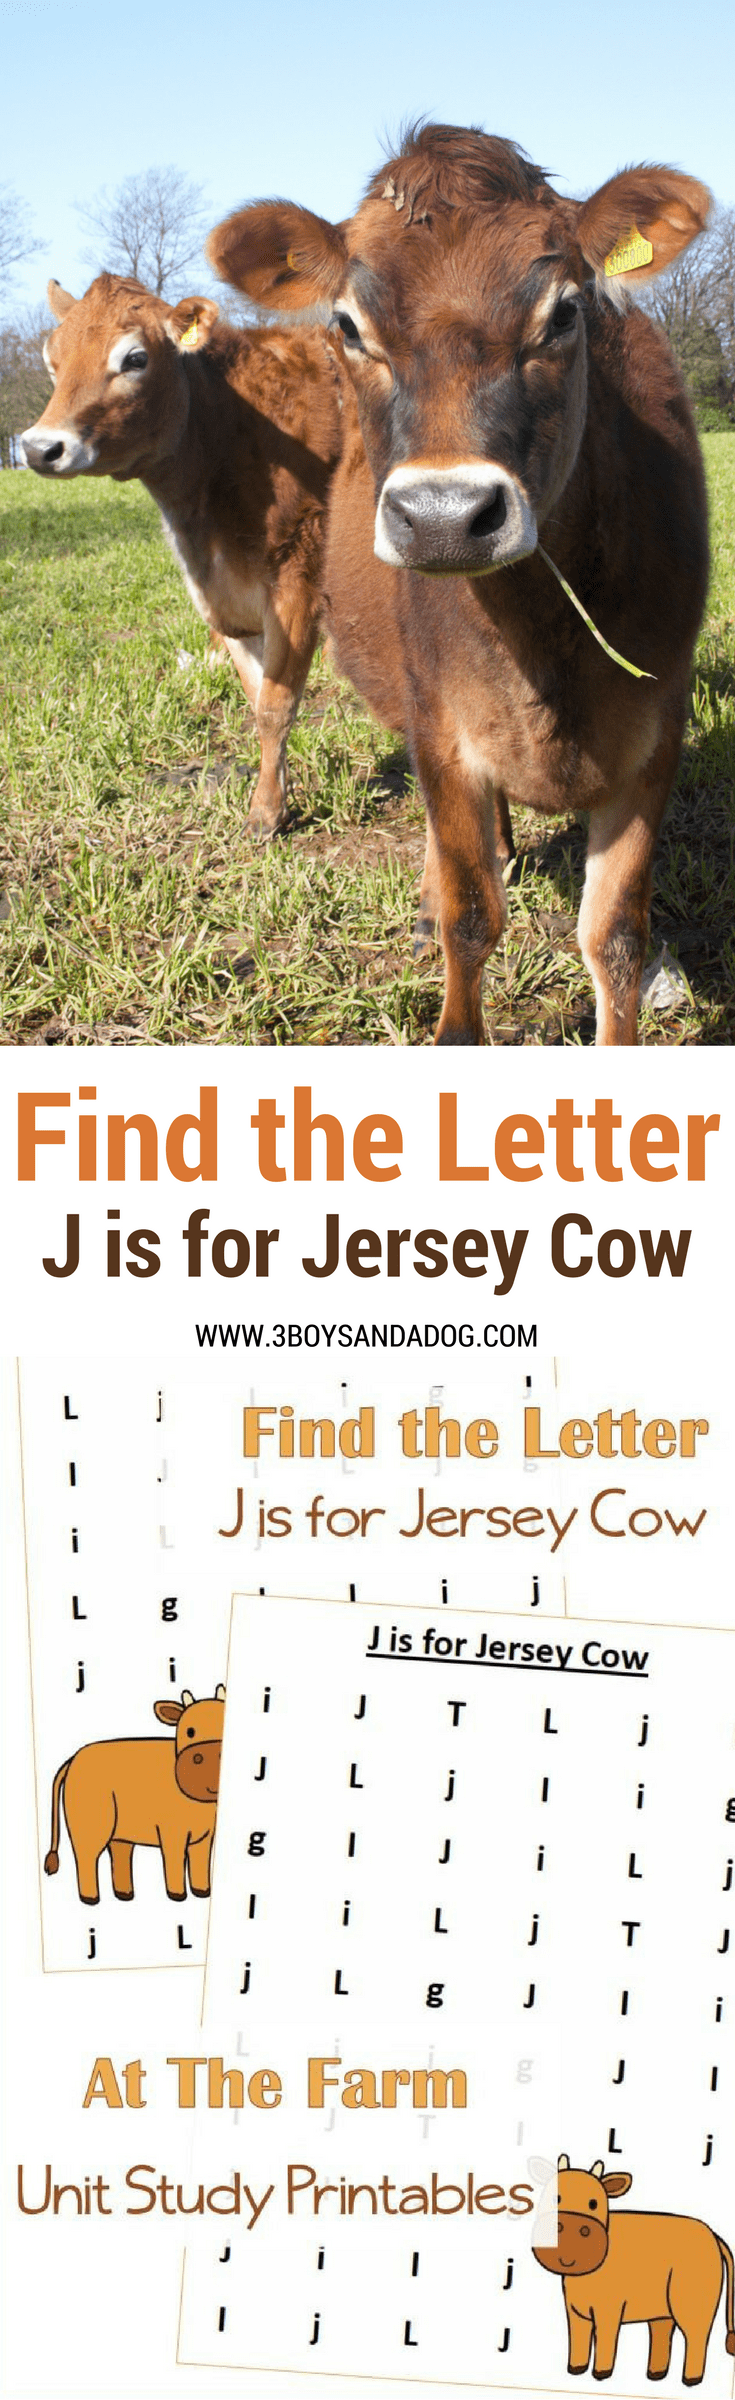 J is for Jersey Cow homeschooling freebies